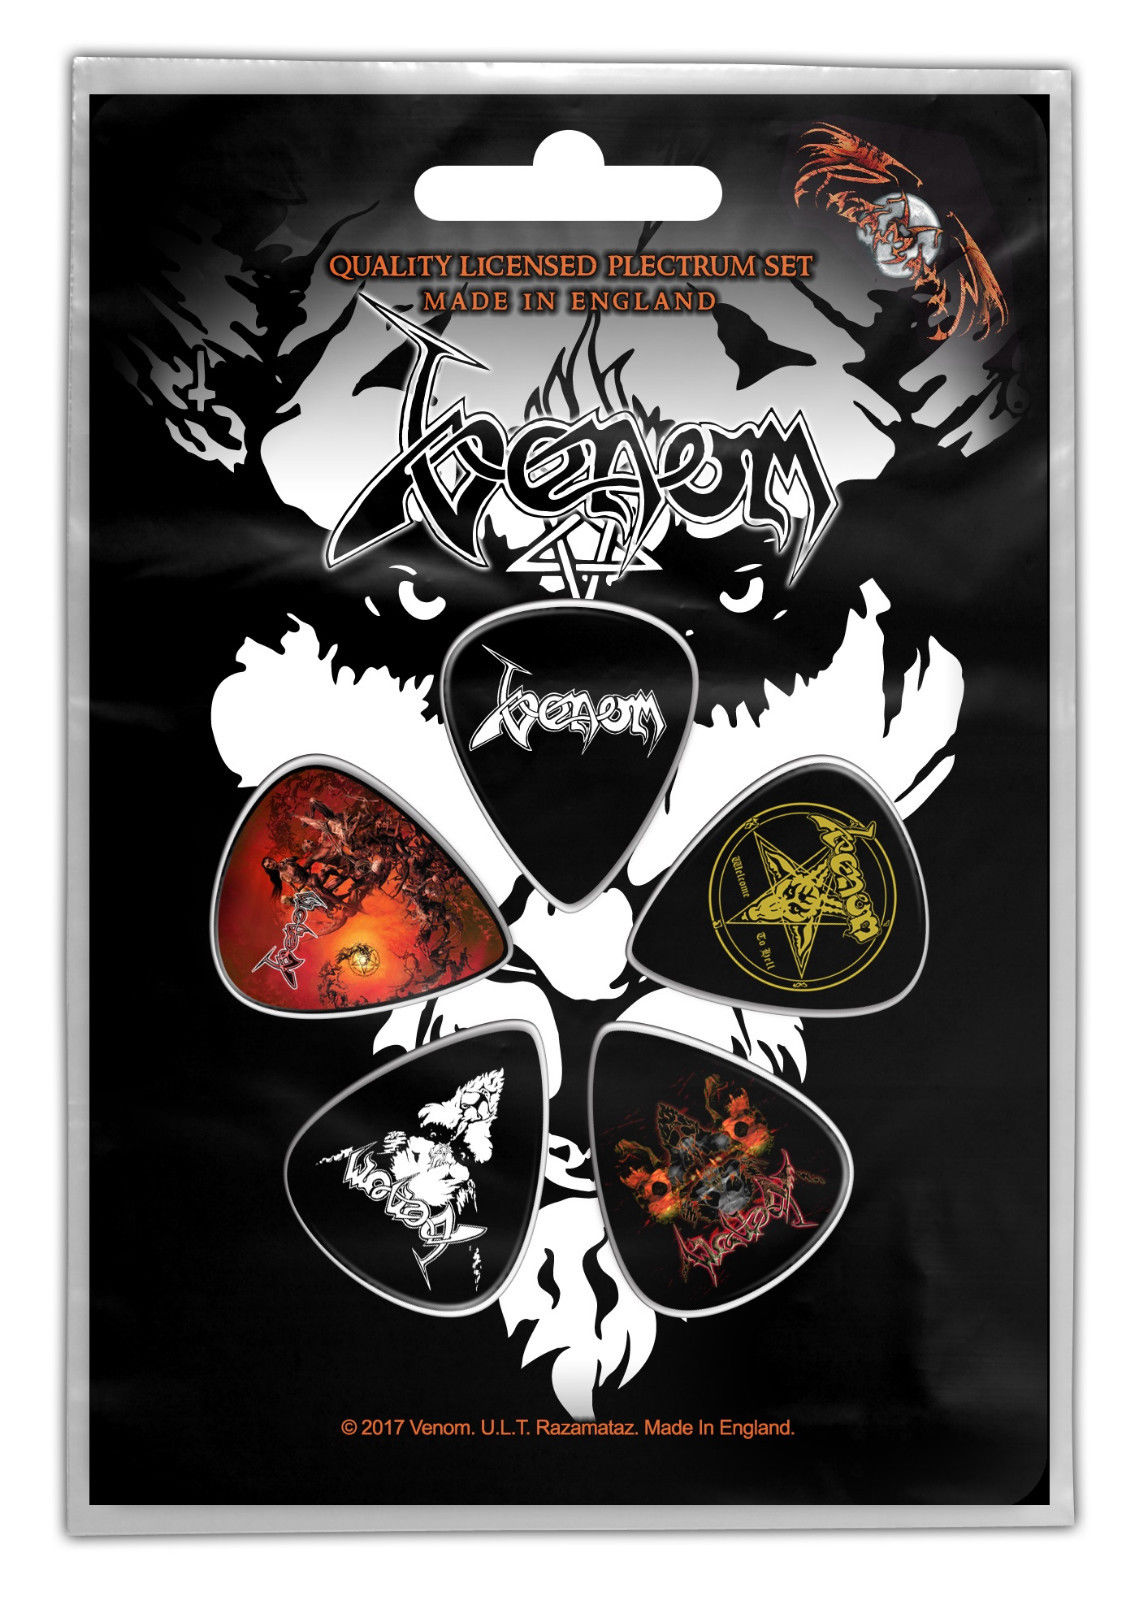 venom black metal collection homepage guitar picks plectrum